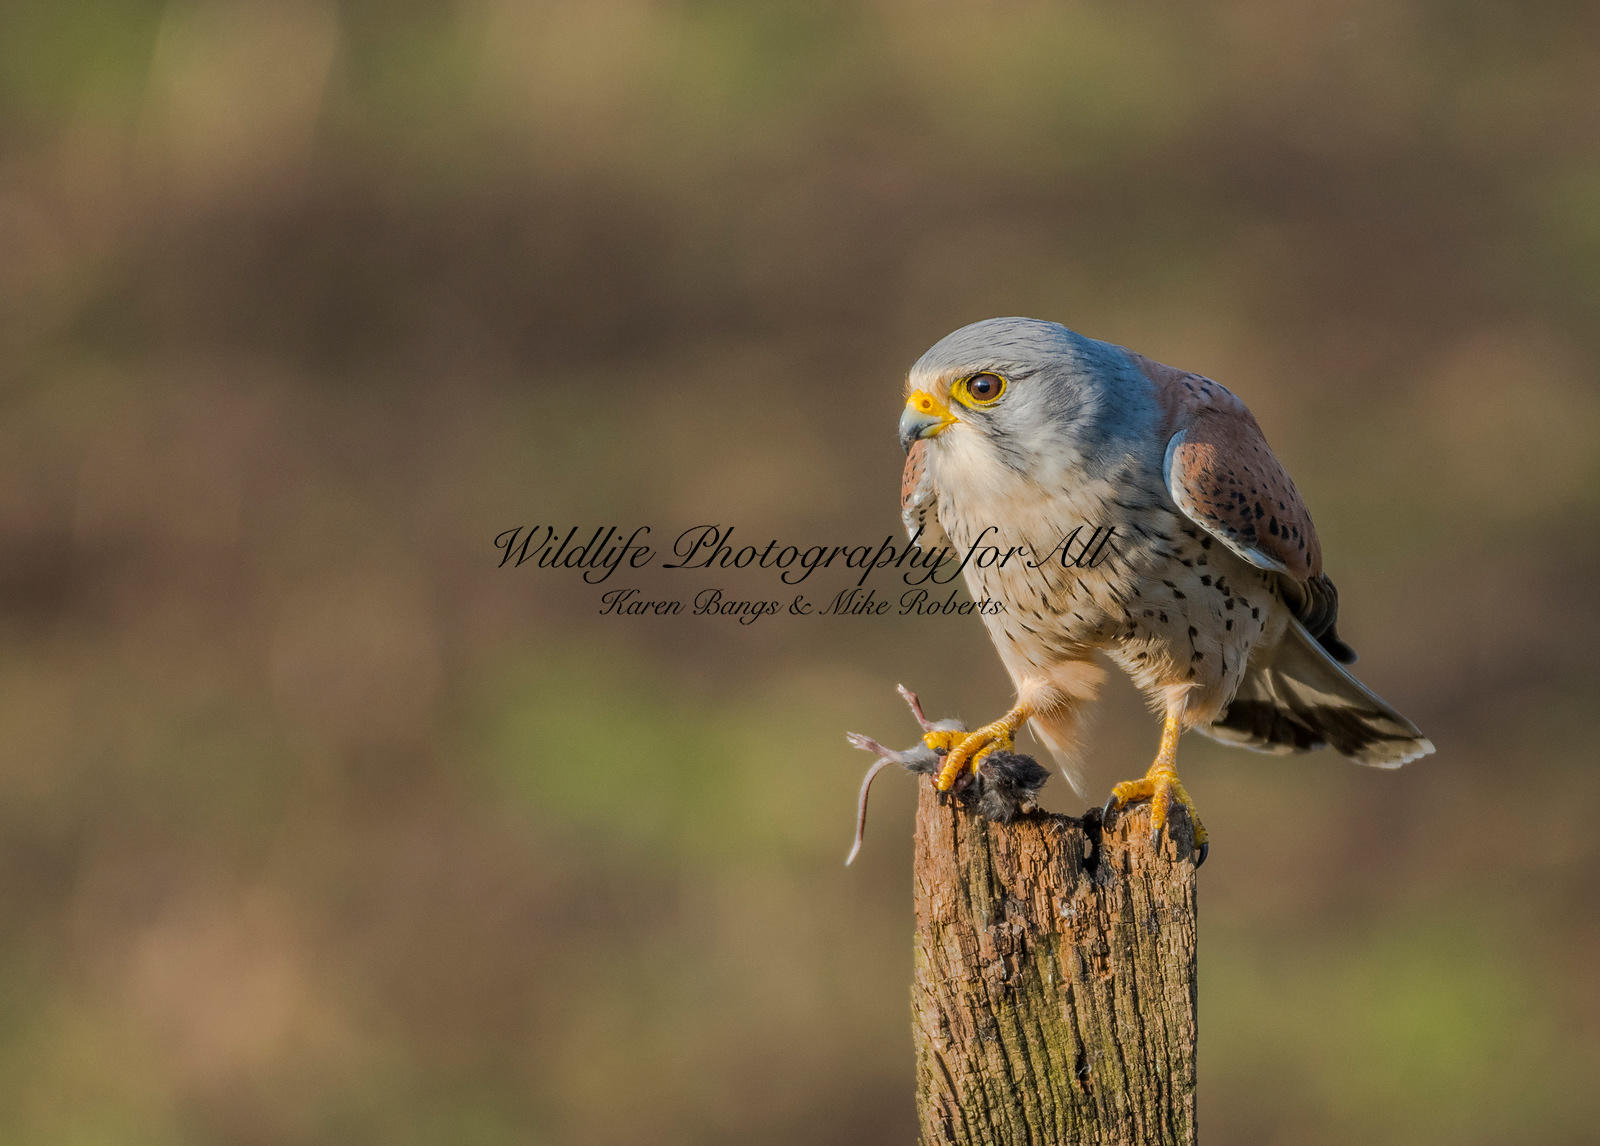 Male Kestrel - Mike Roberts